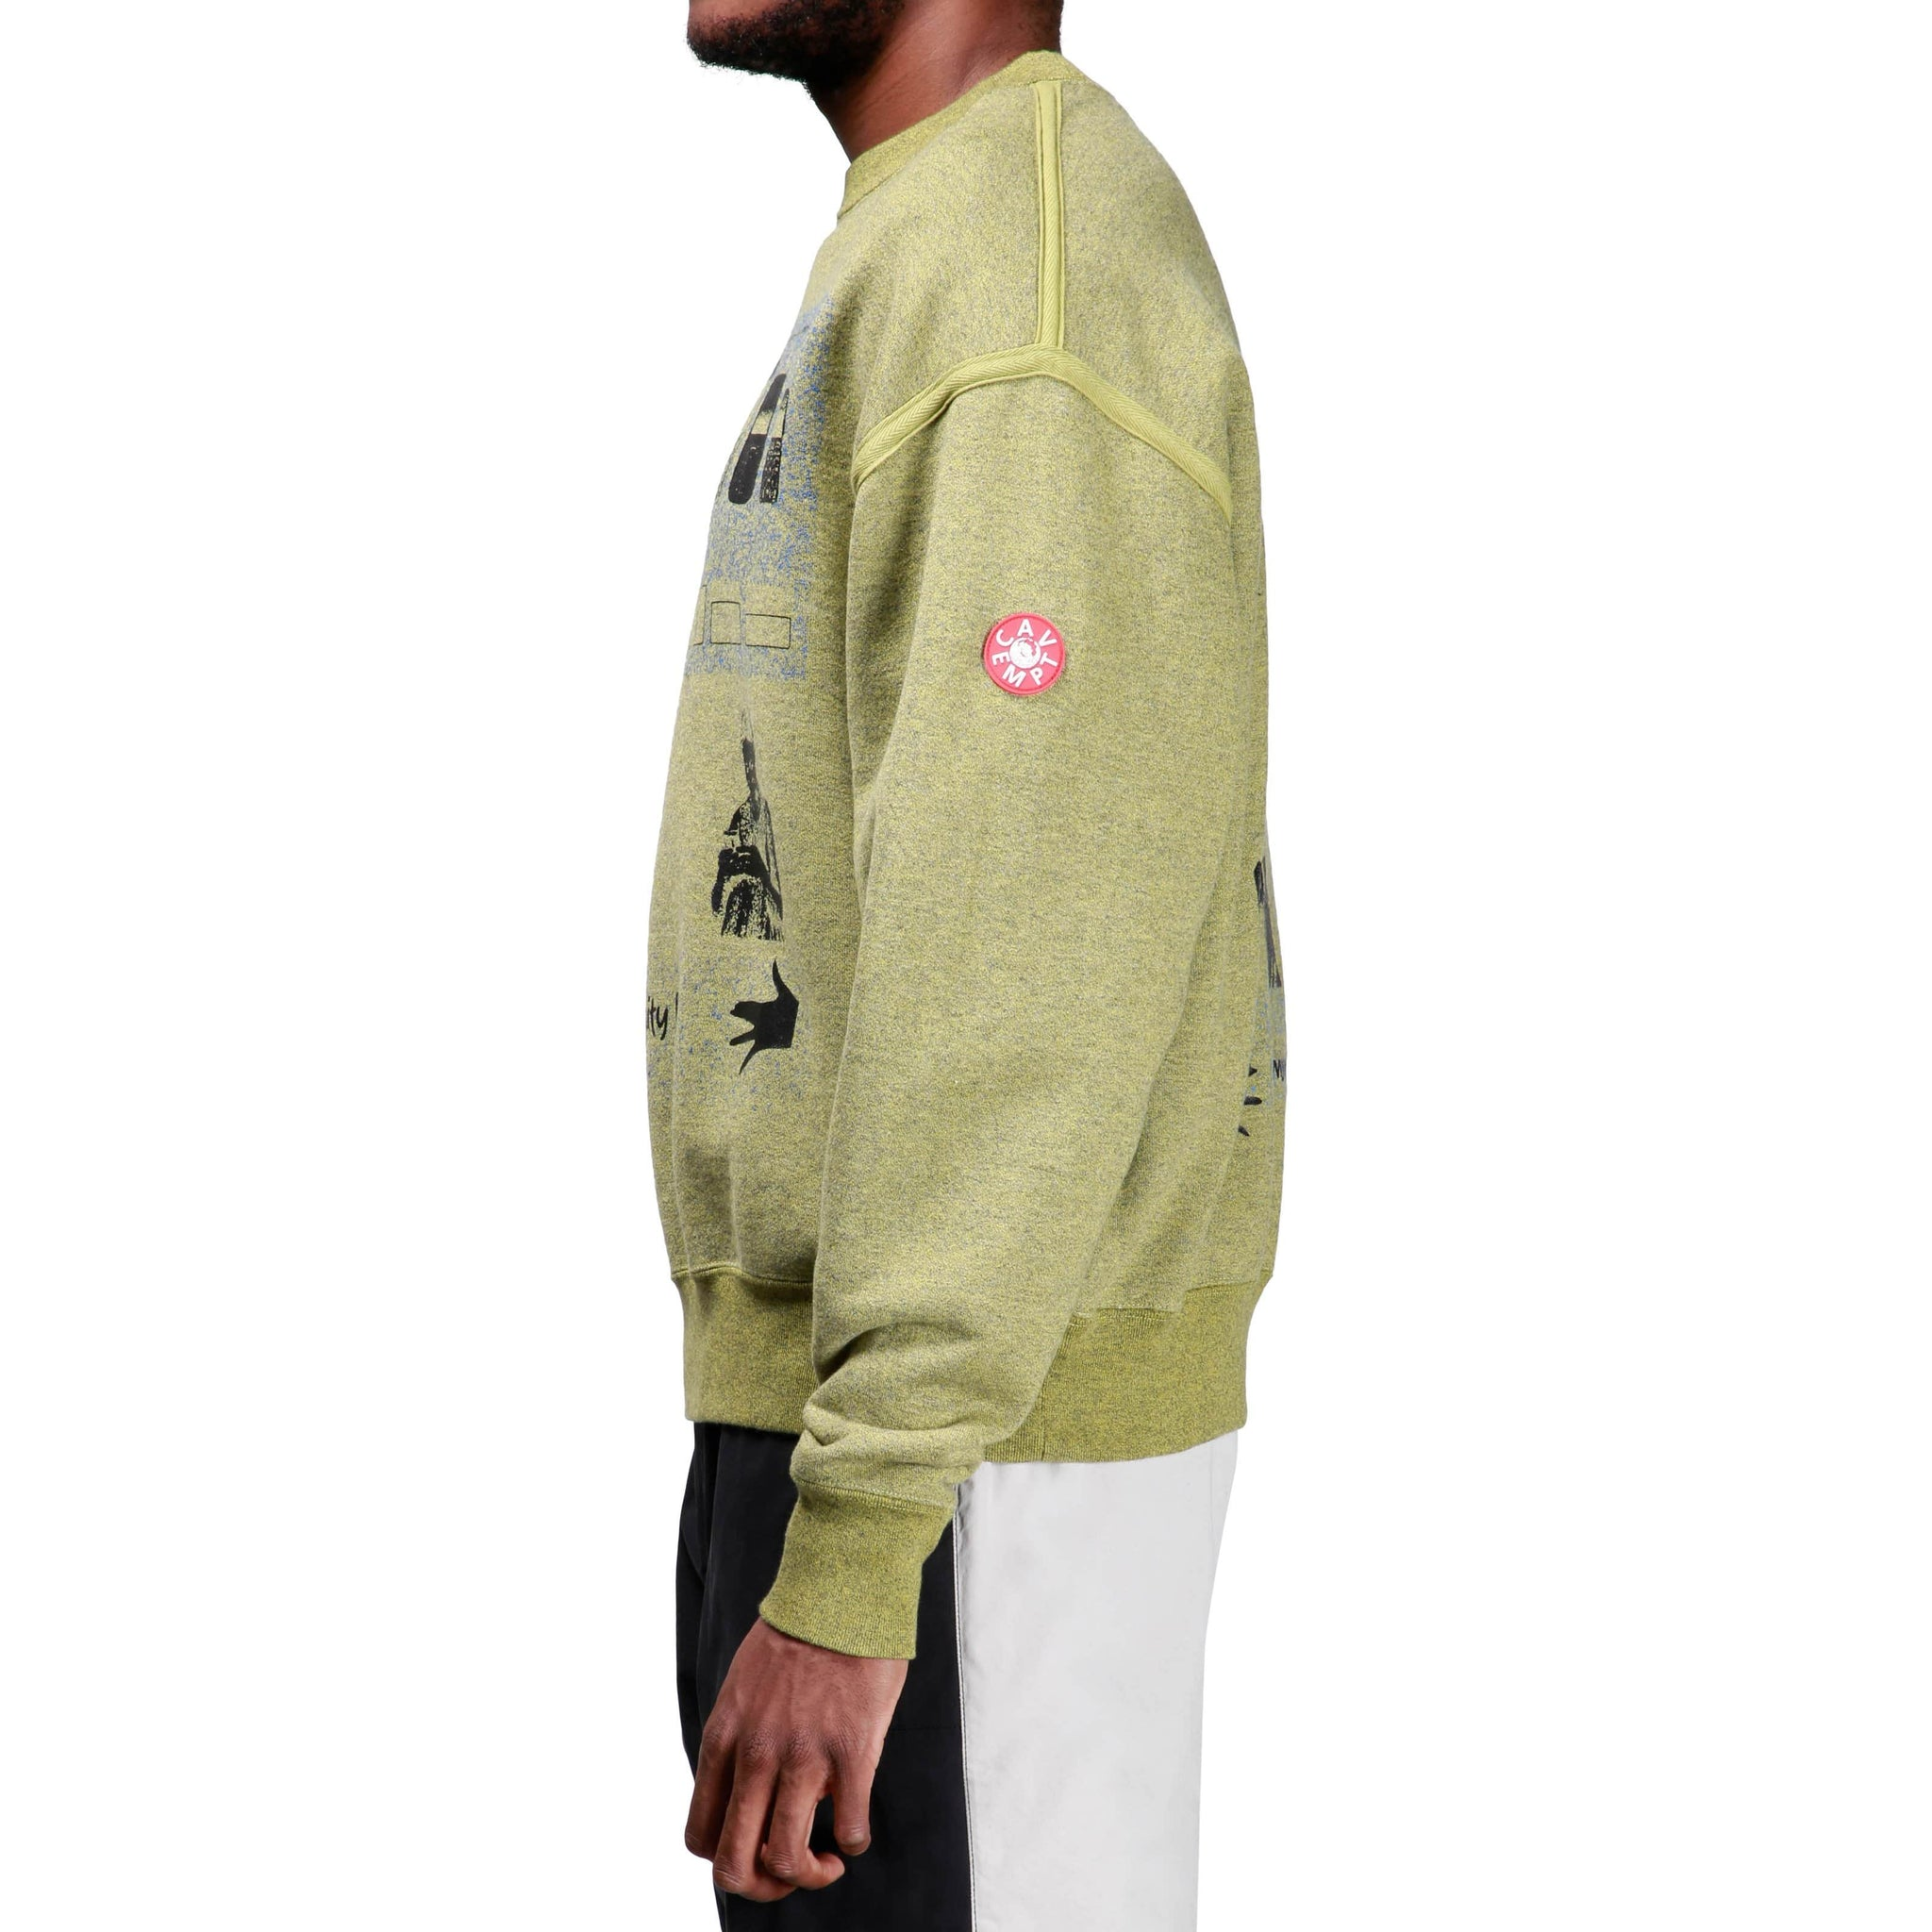 Cav Empt YELLOW HEATHER CREW NECK Olive